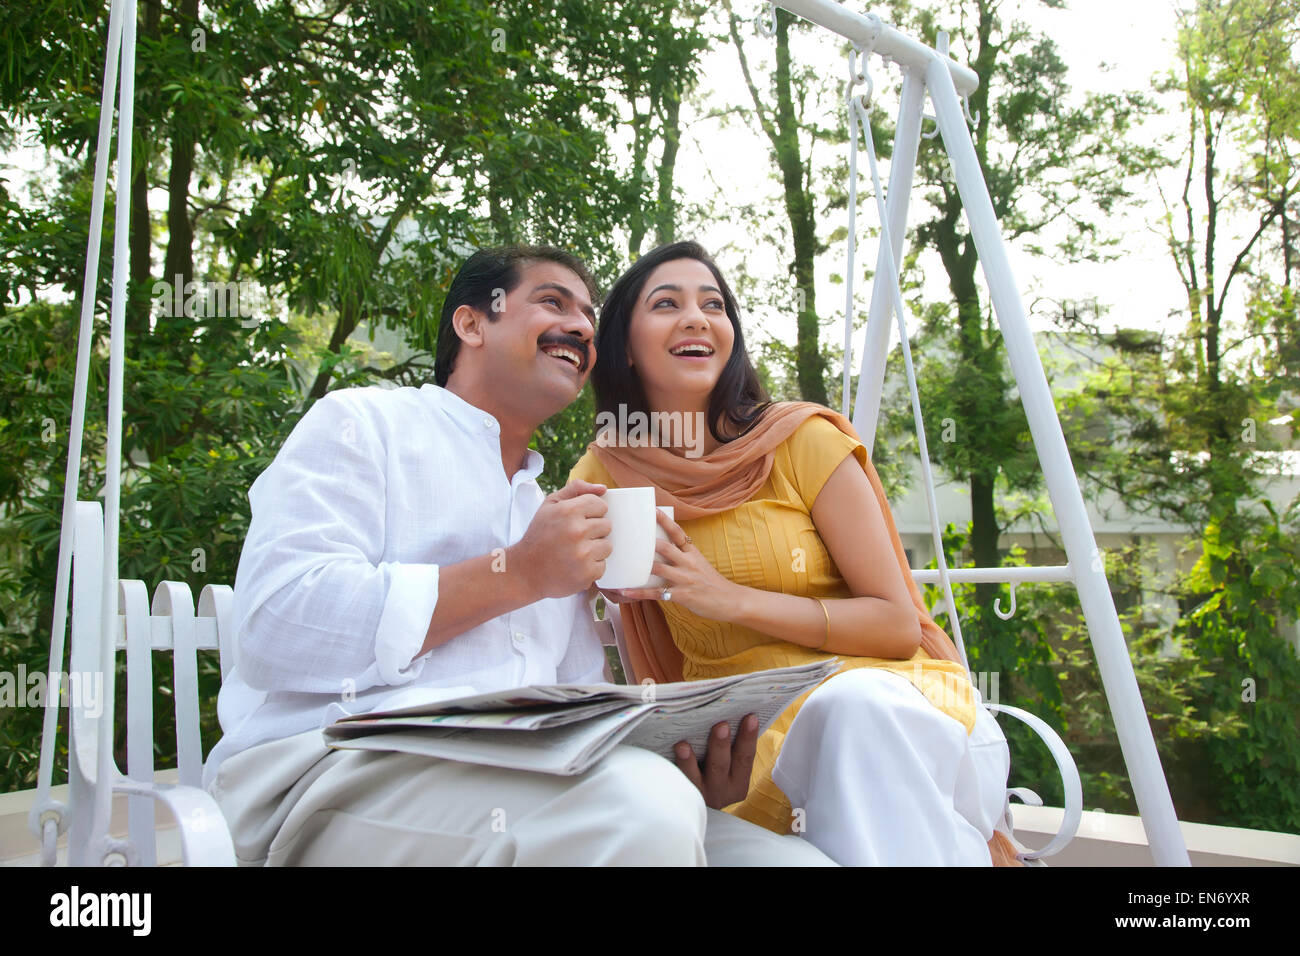 Husband and wife looking at something - Stock Image